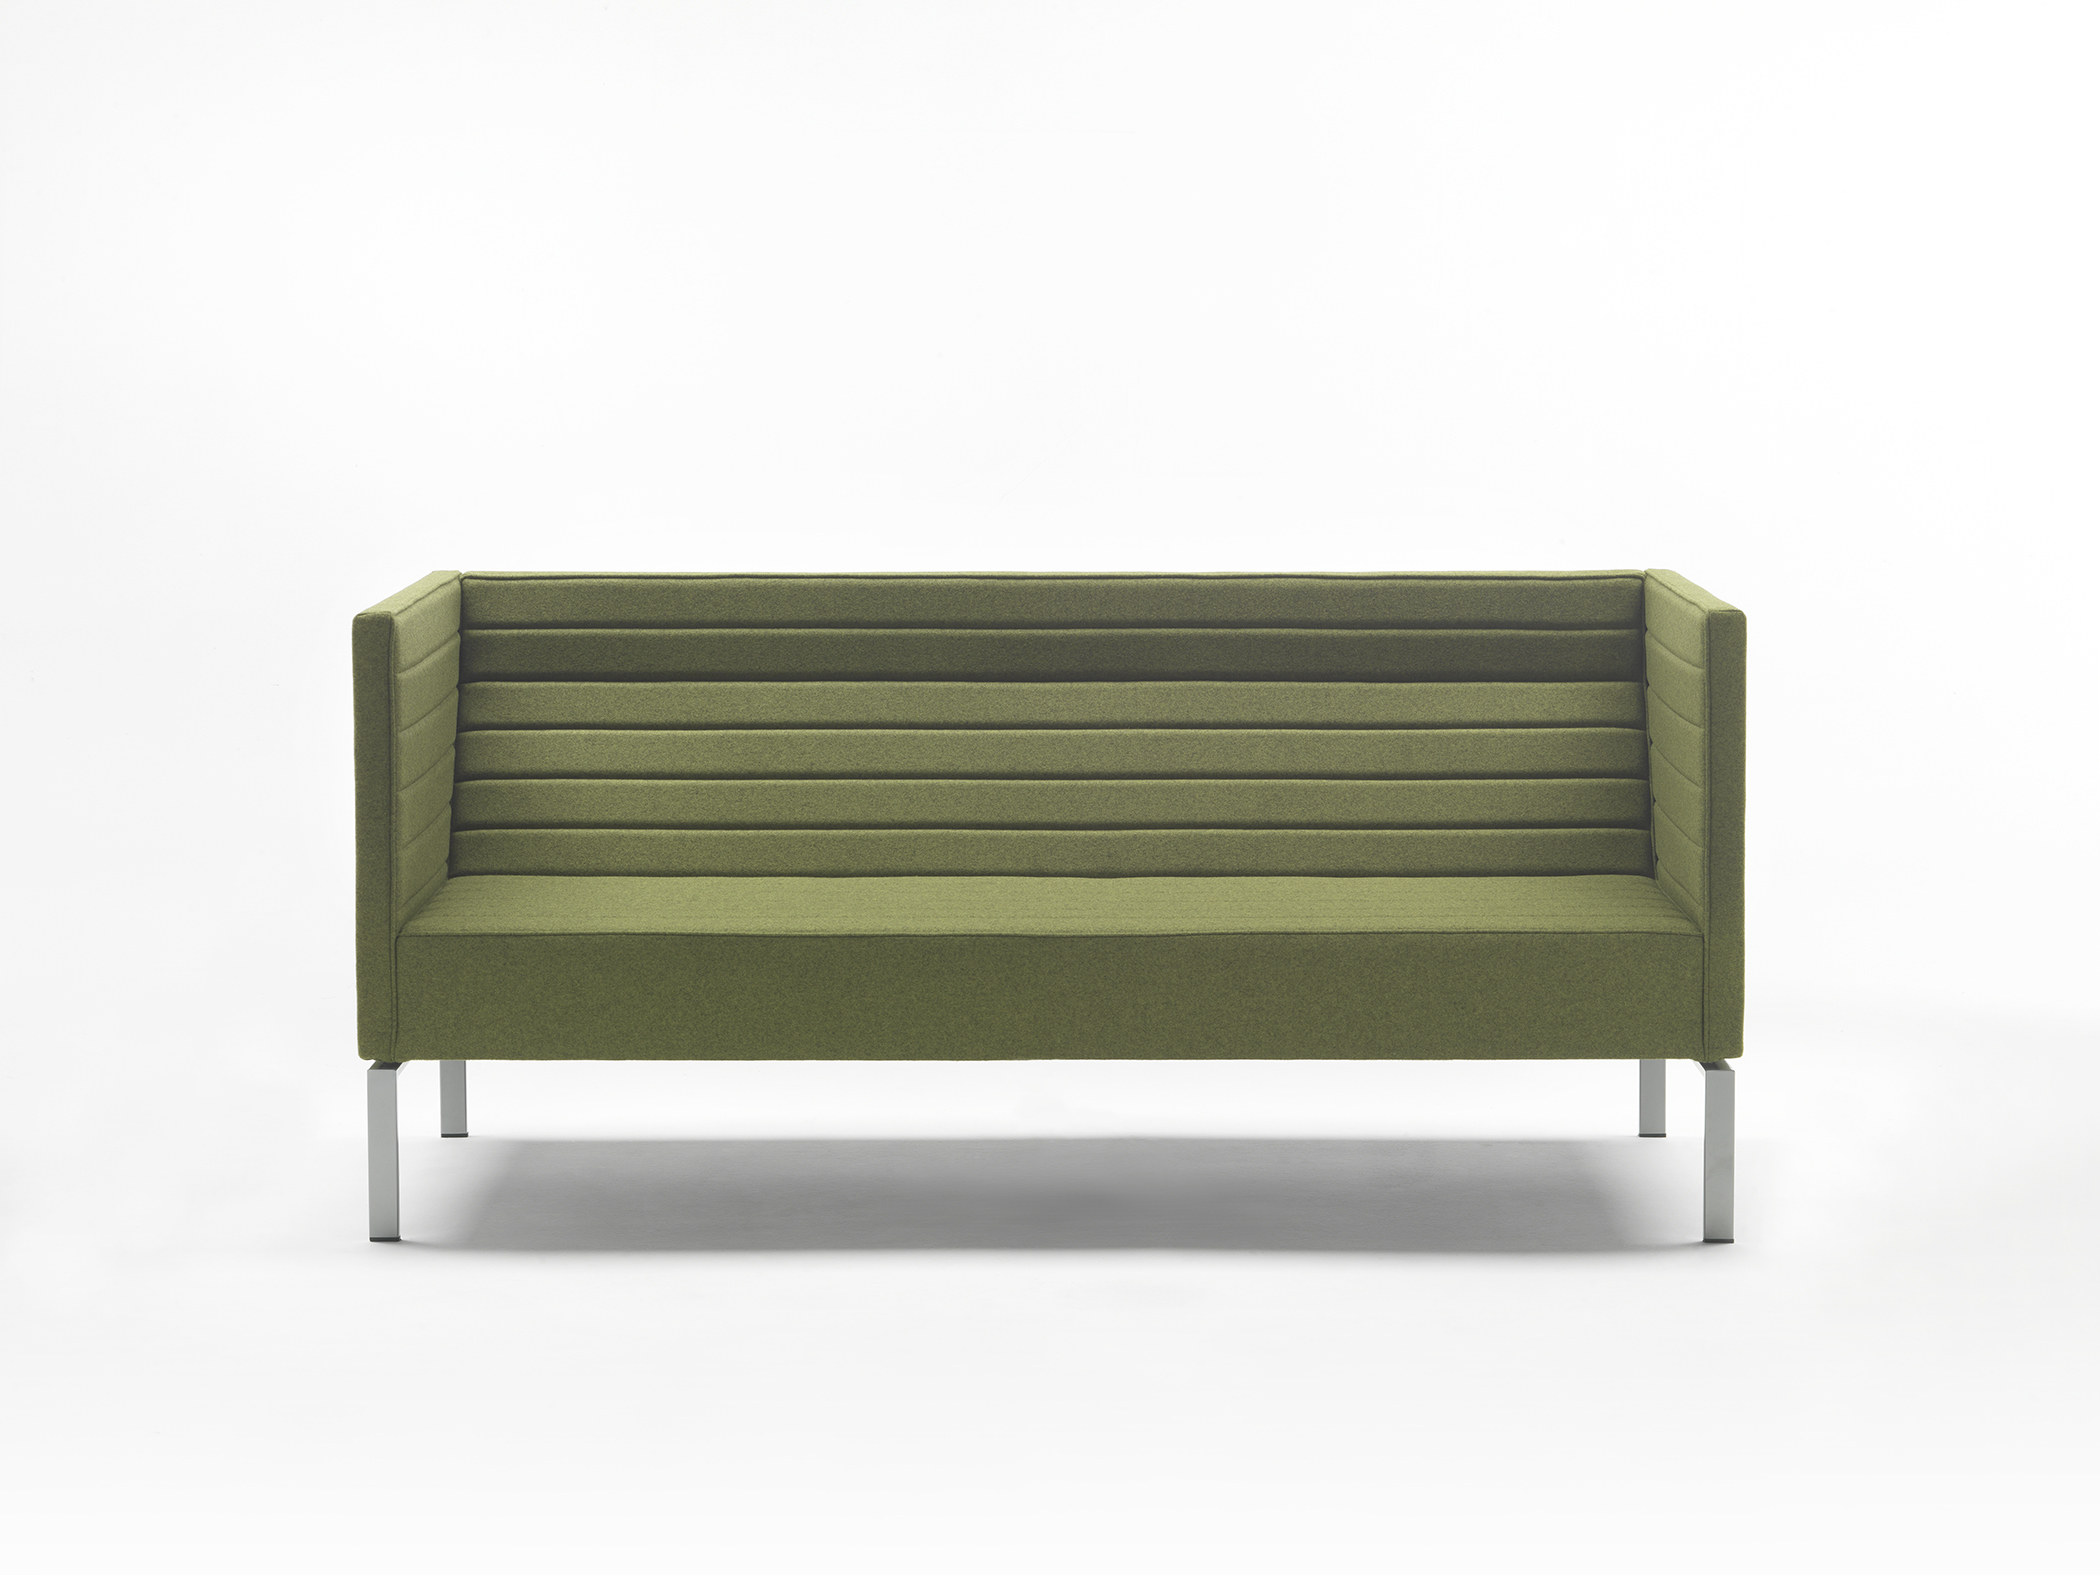 Einsitzer Sofa Stripes Marelli Contract